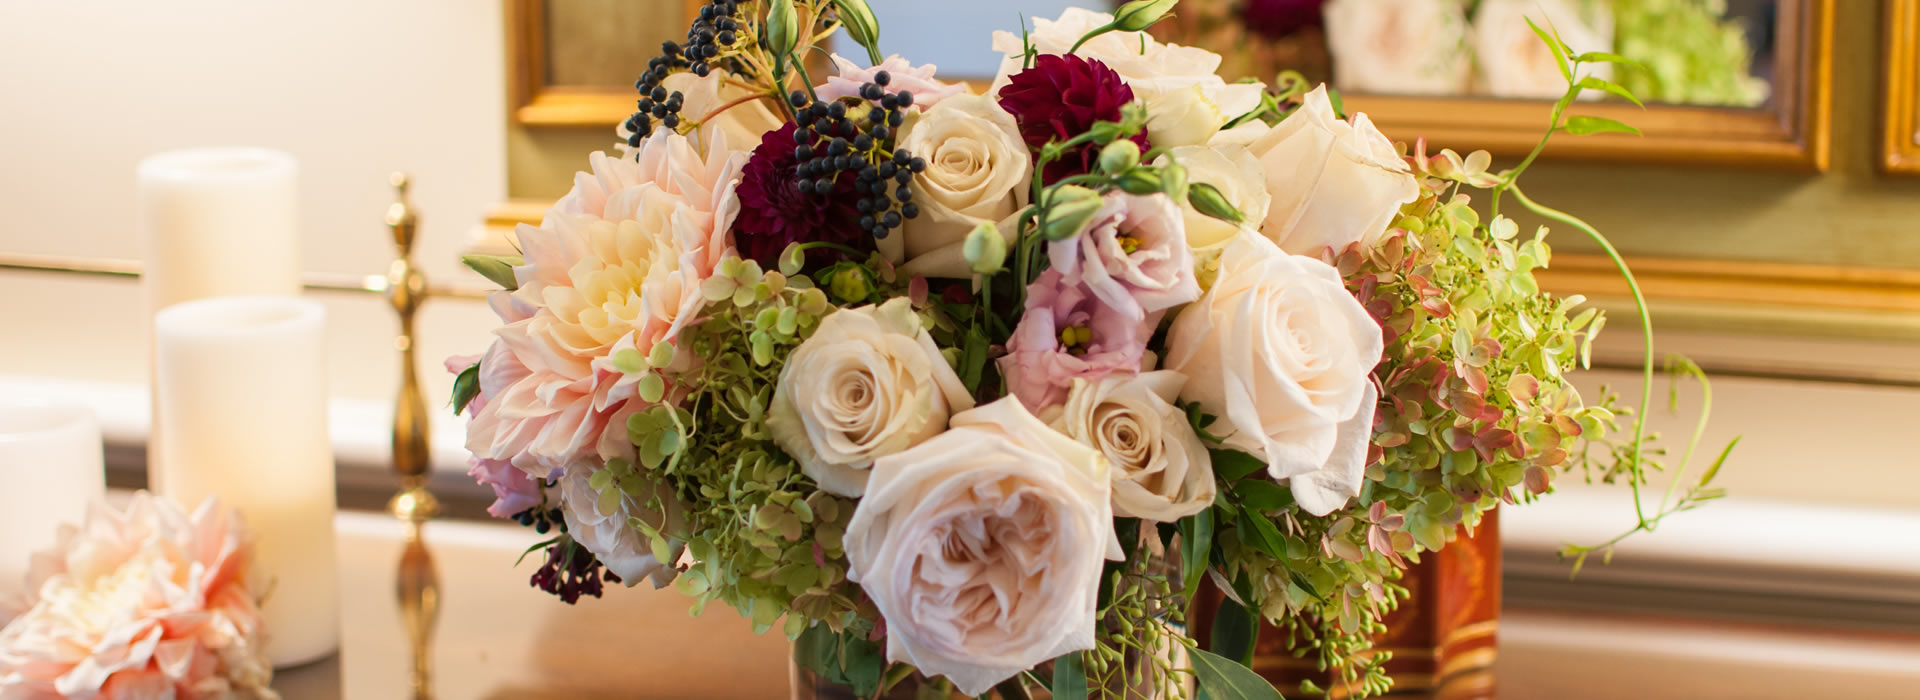 Bouquet of flowers in vase, including pink roses, hydrangeas, carnations, lisanthus and eucalyptus